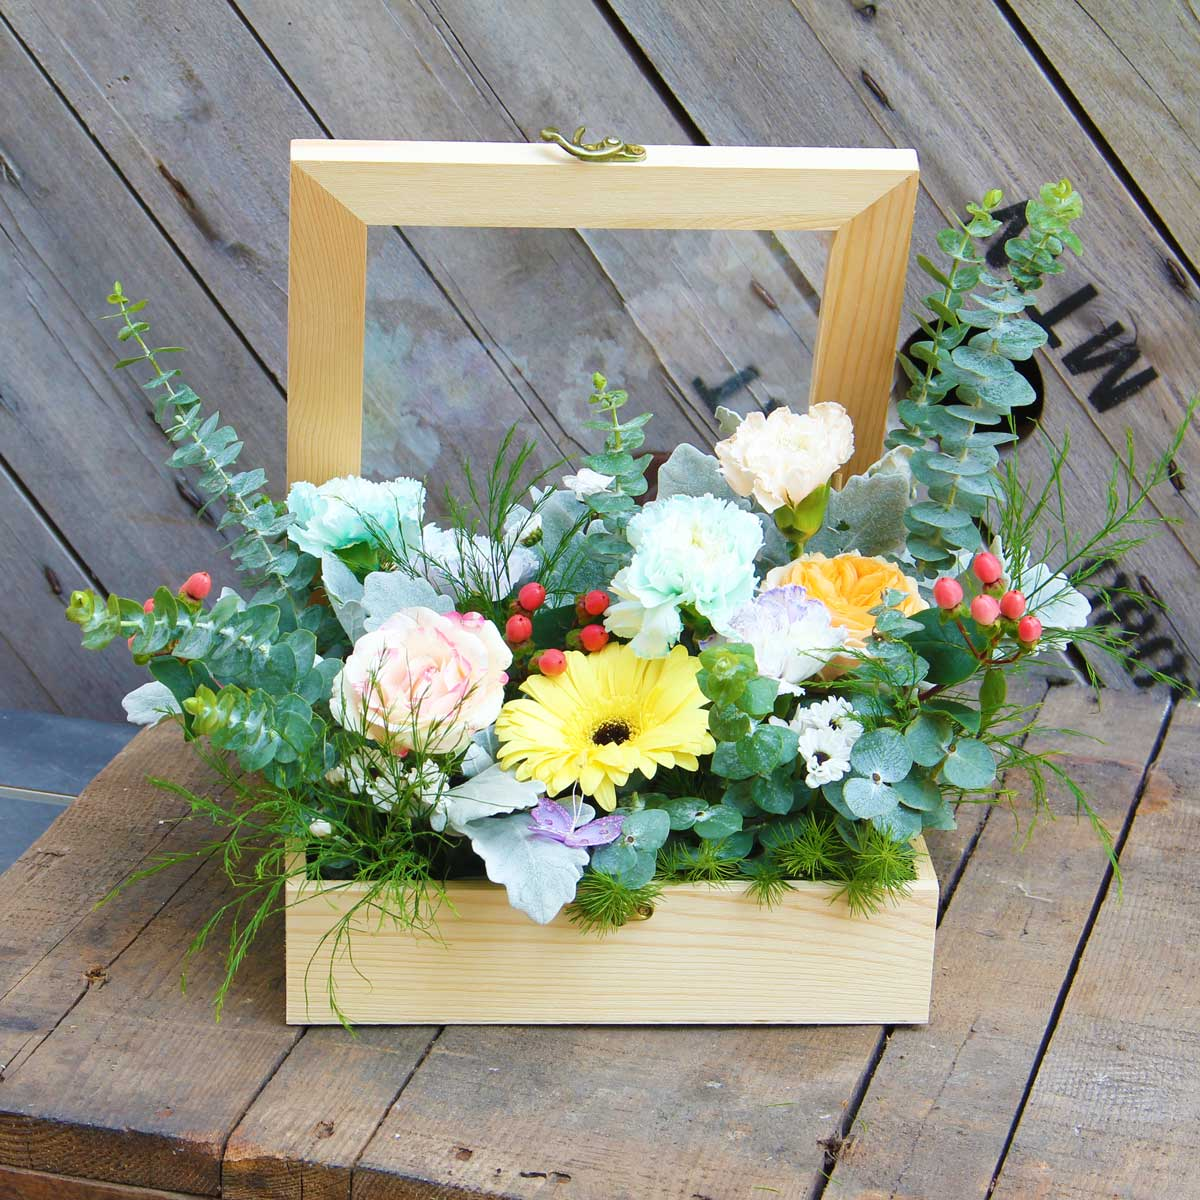 Seal with Love Flower Box | Eska Creative Gifting